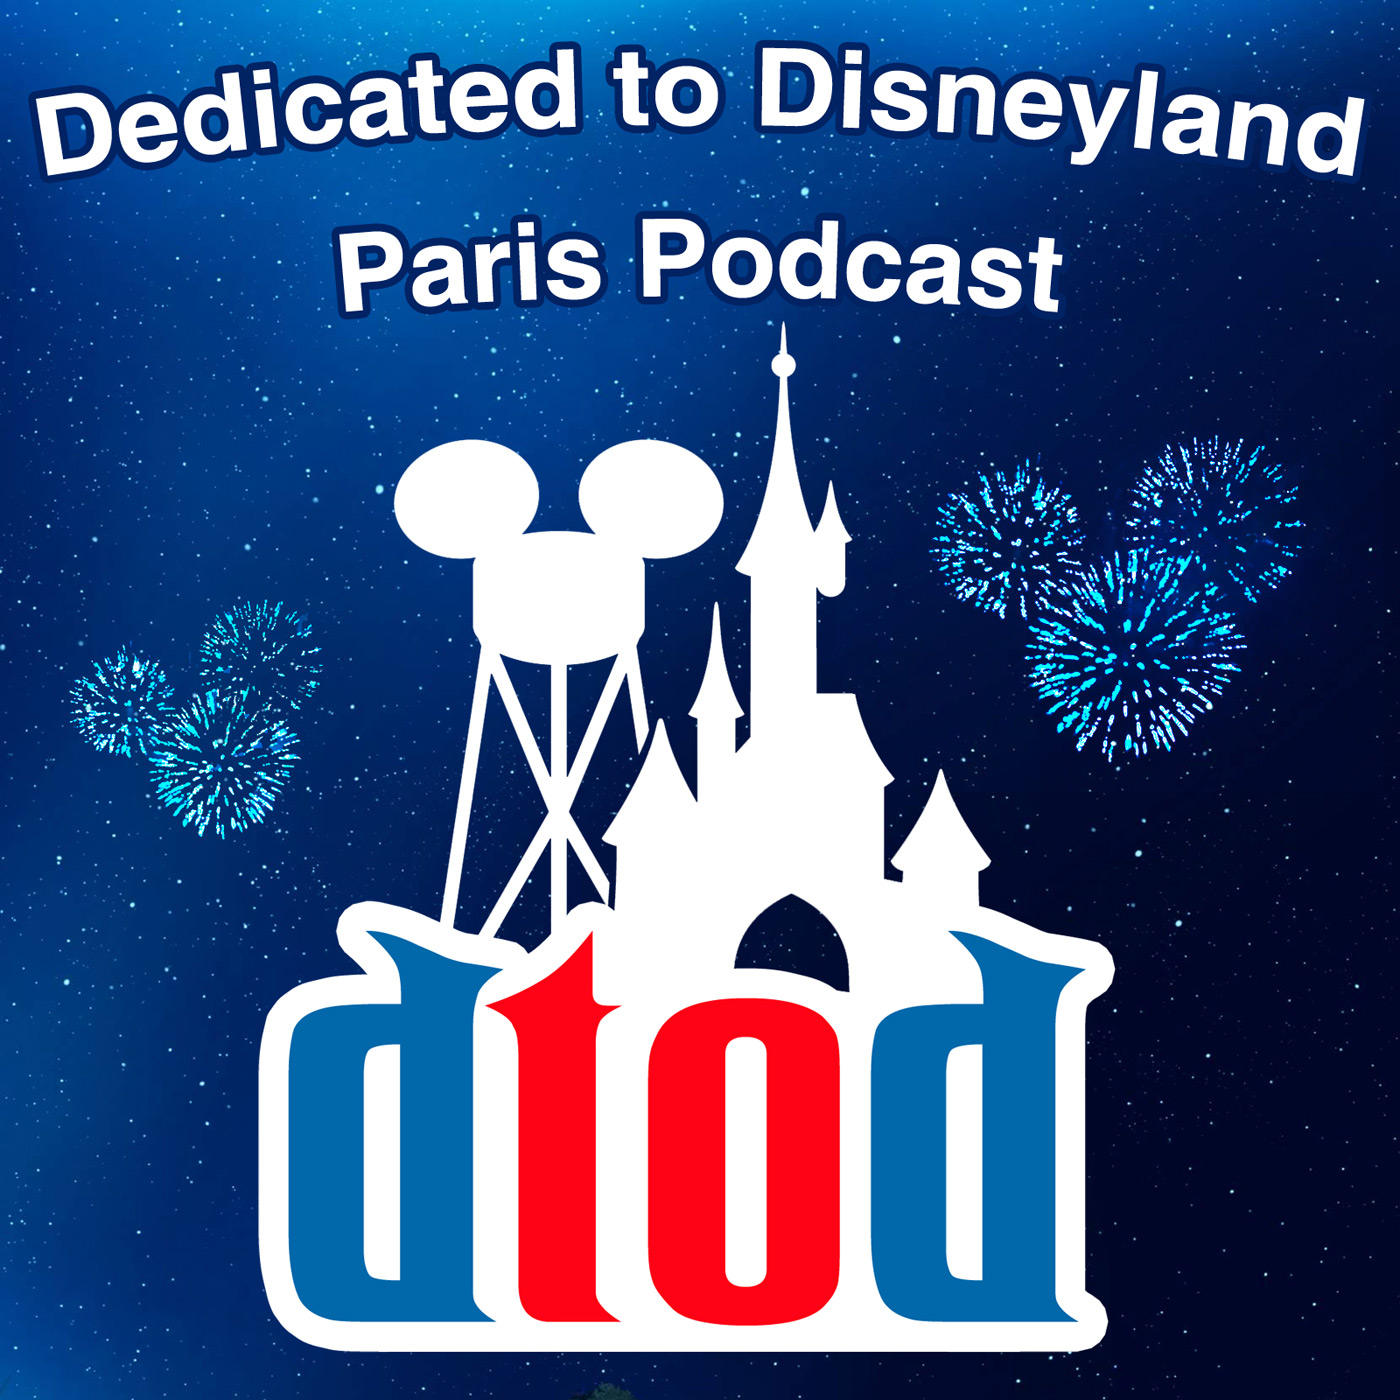 Dedicated to Disneyland Paris Podcast show art